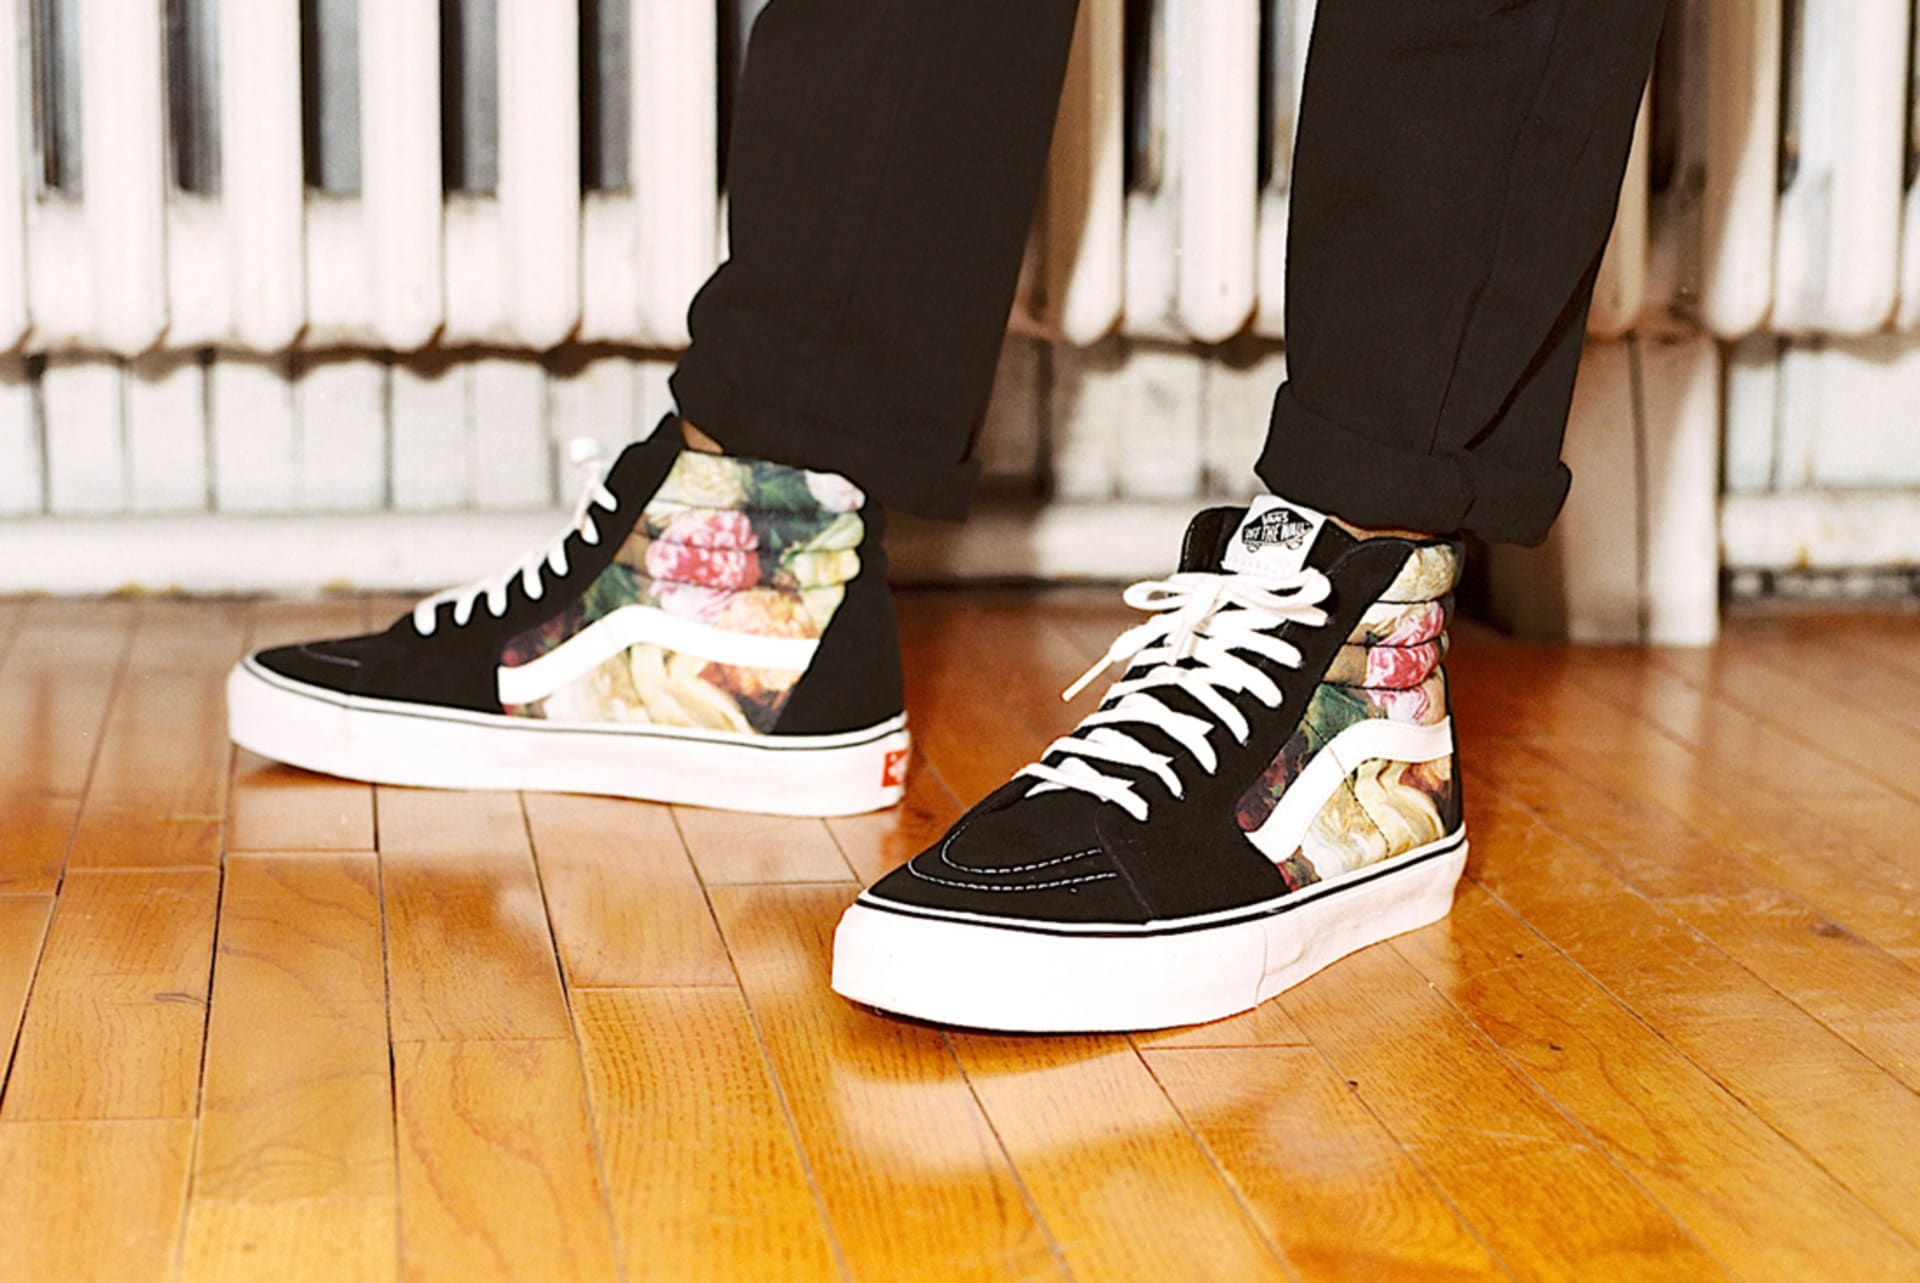 ff1f4a709f How Fashion Came to Embrace Vans  Skate Sneakers